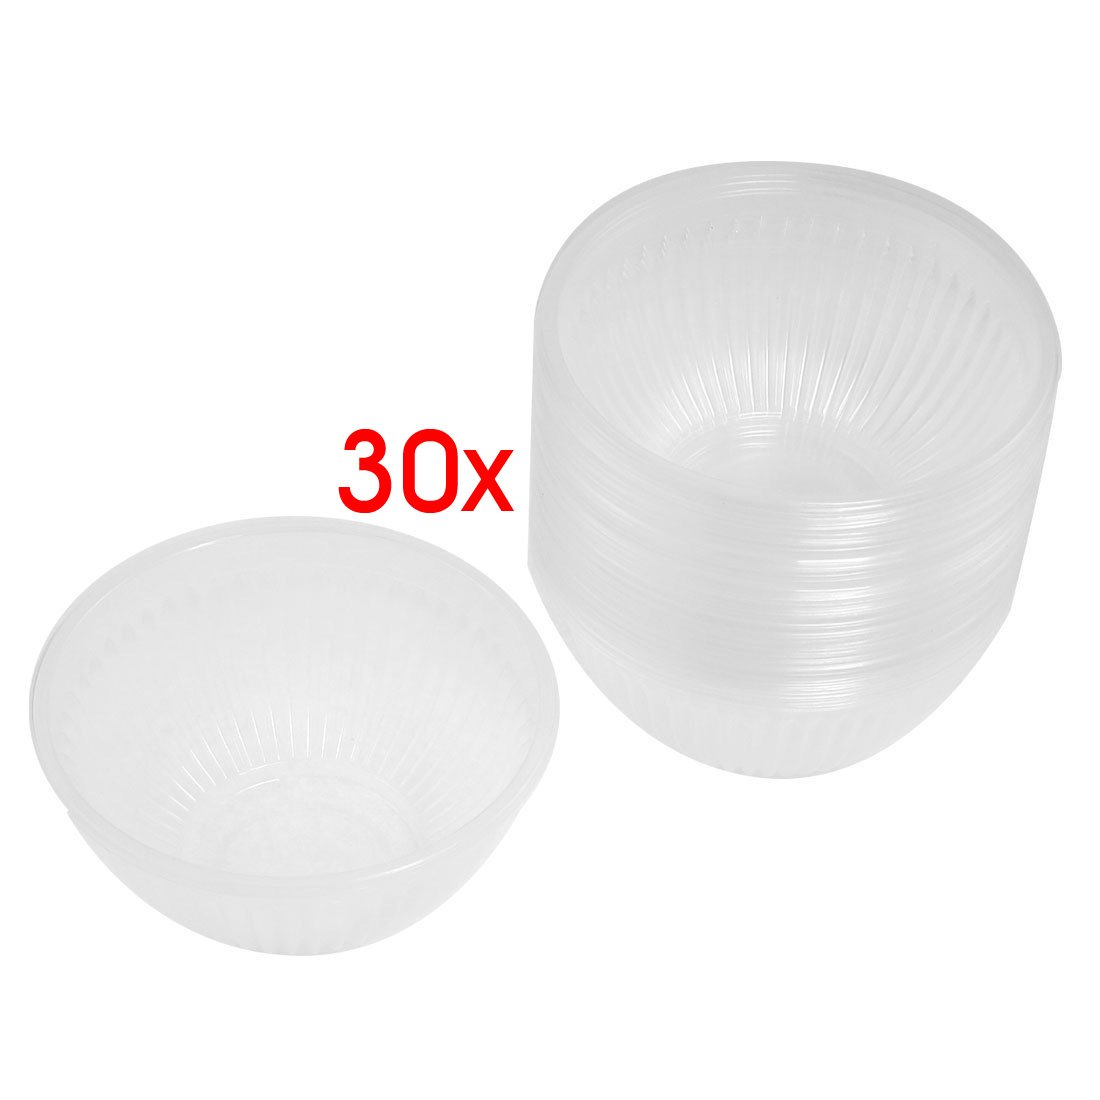 SODIAL(R) 30 Pcs 4.1 Diameter Clear Plastic Disposable Rice Bowl